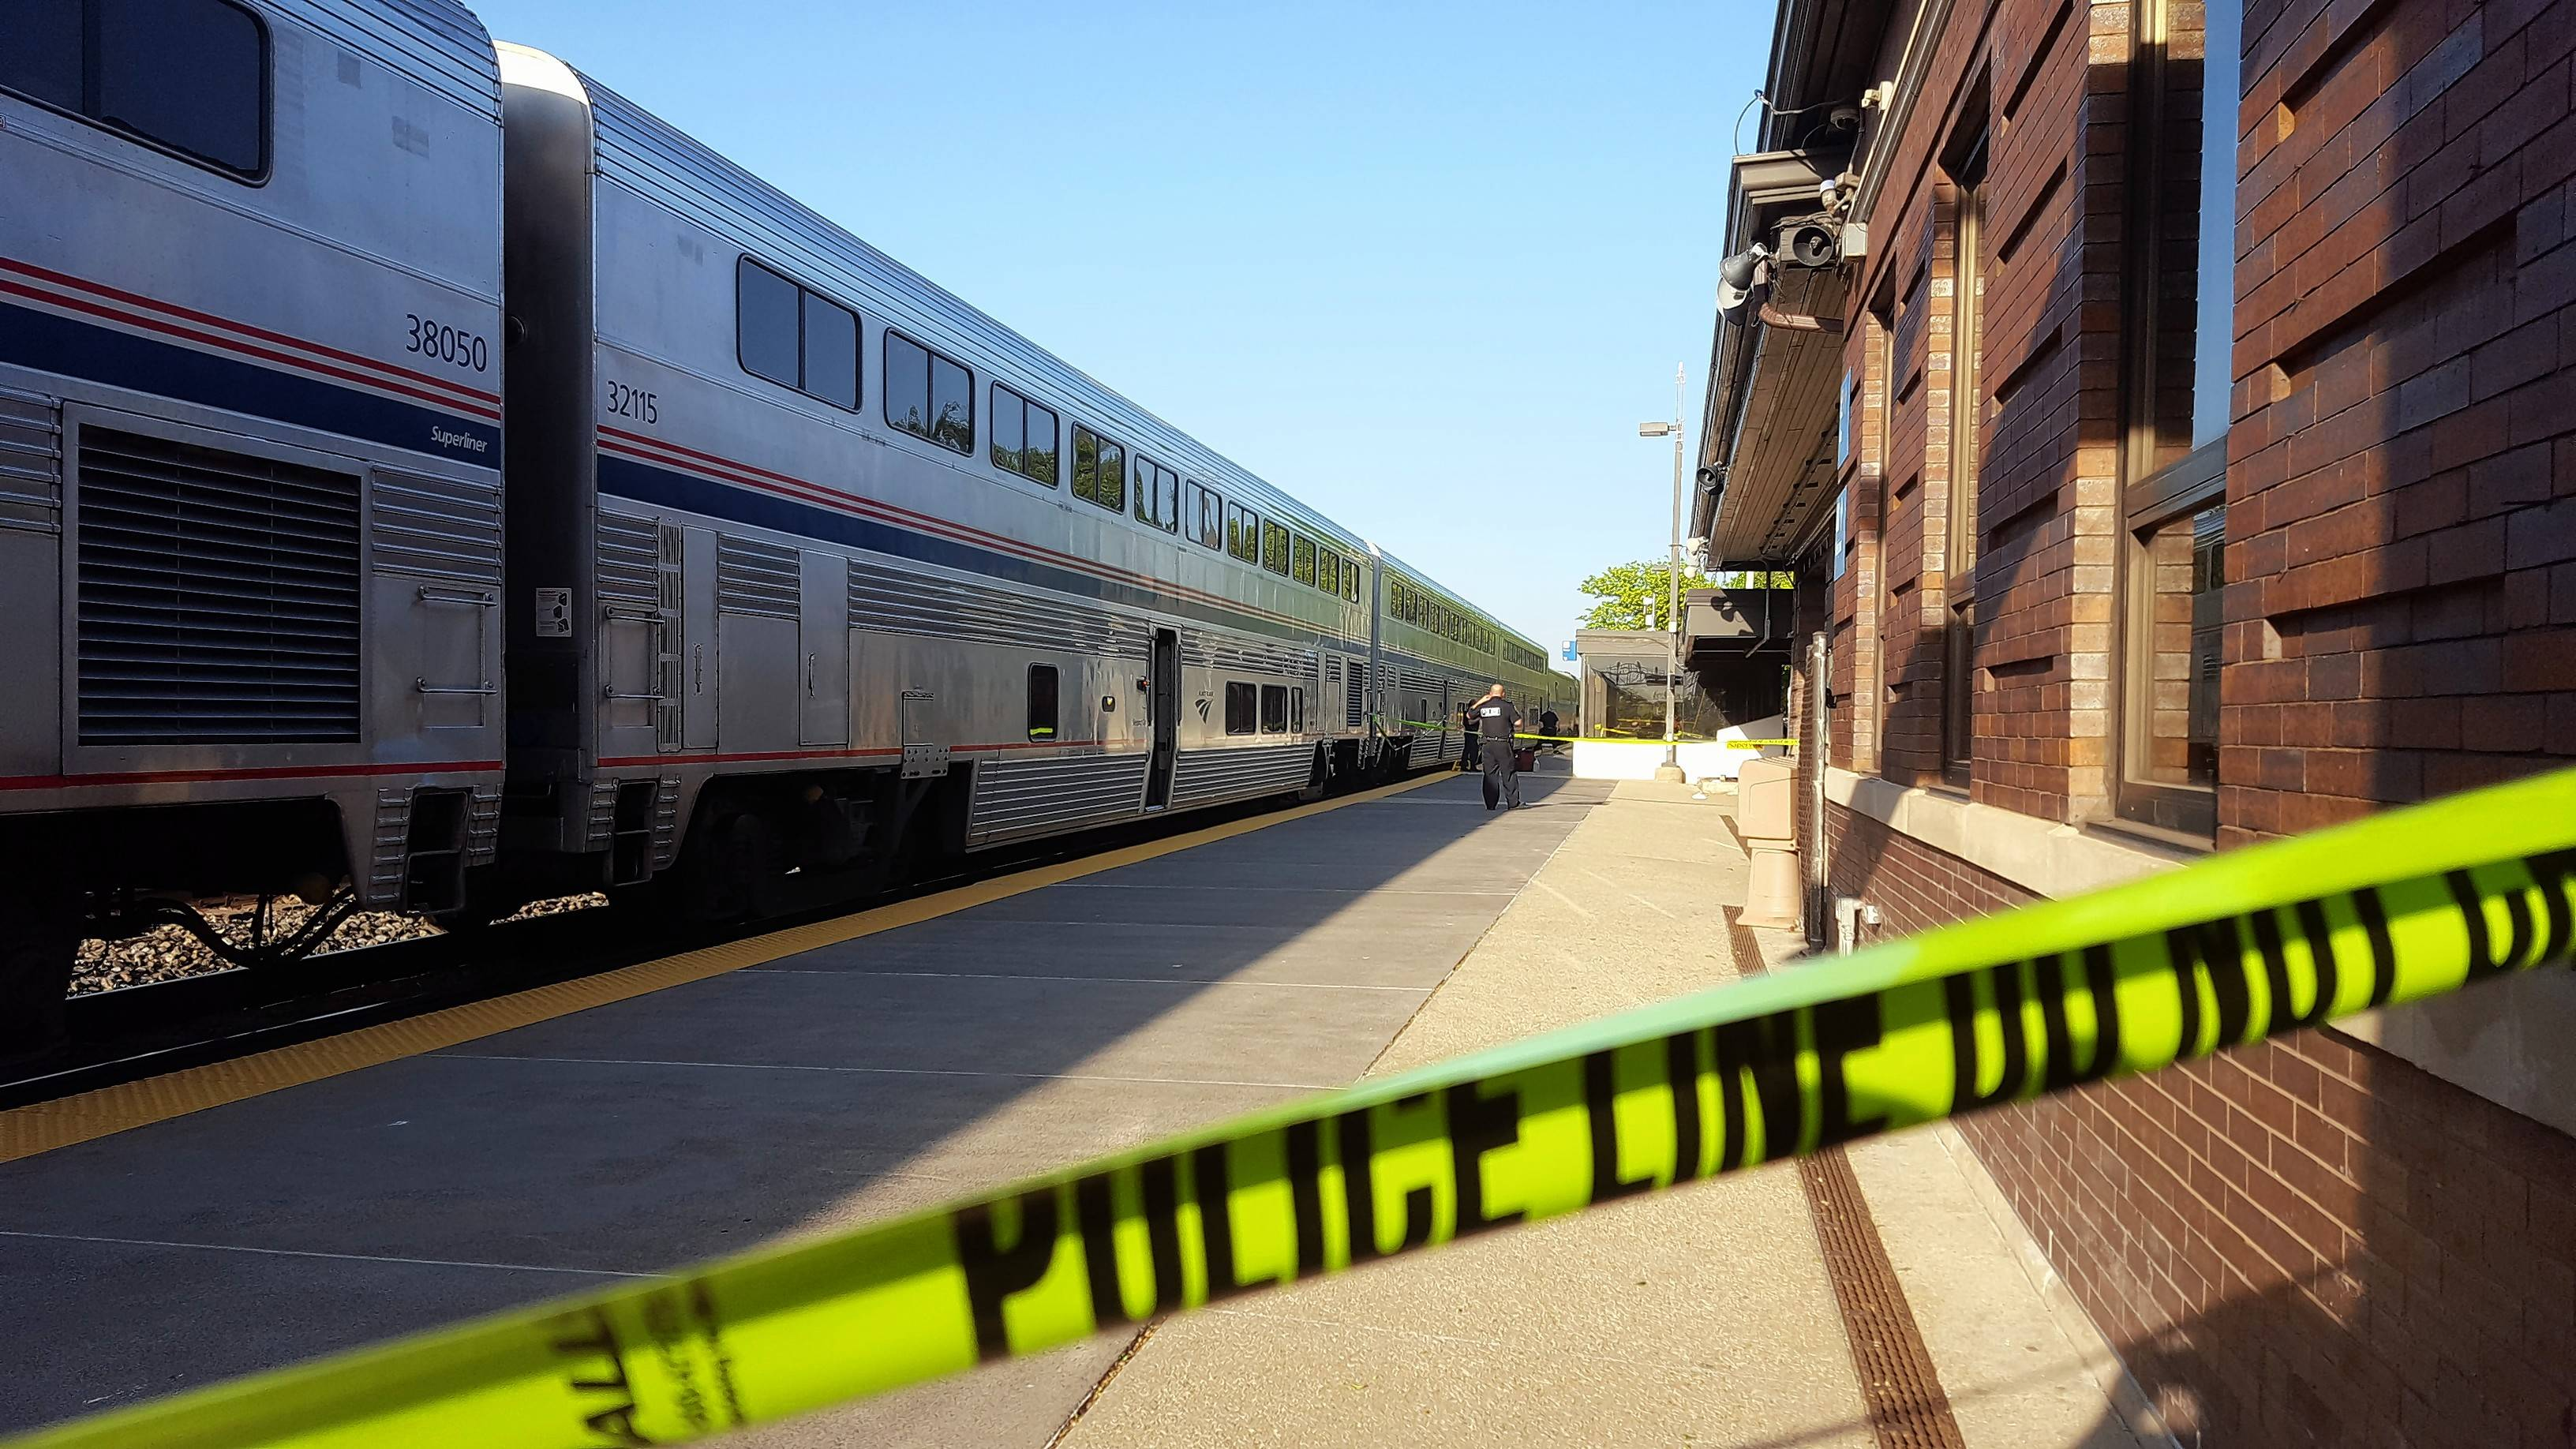 Authorities said activity was back to normal the day after a conductor was shot at the 5th Avenue station in Naperville.